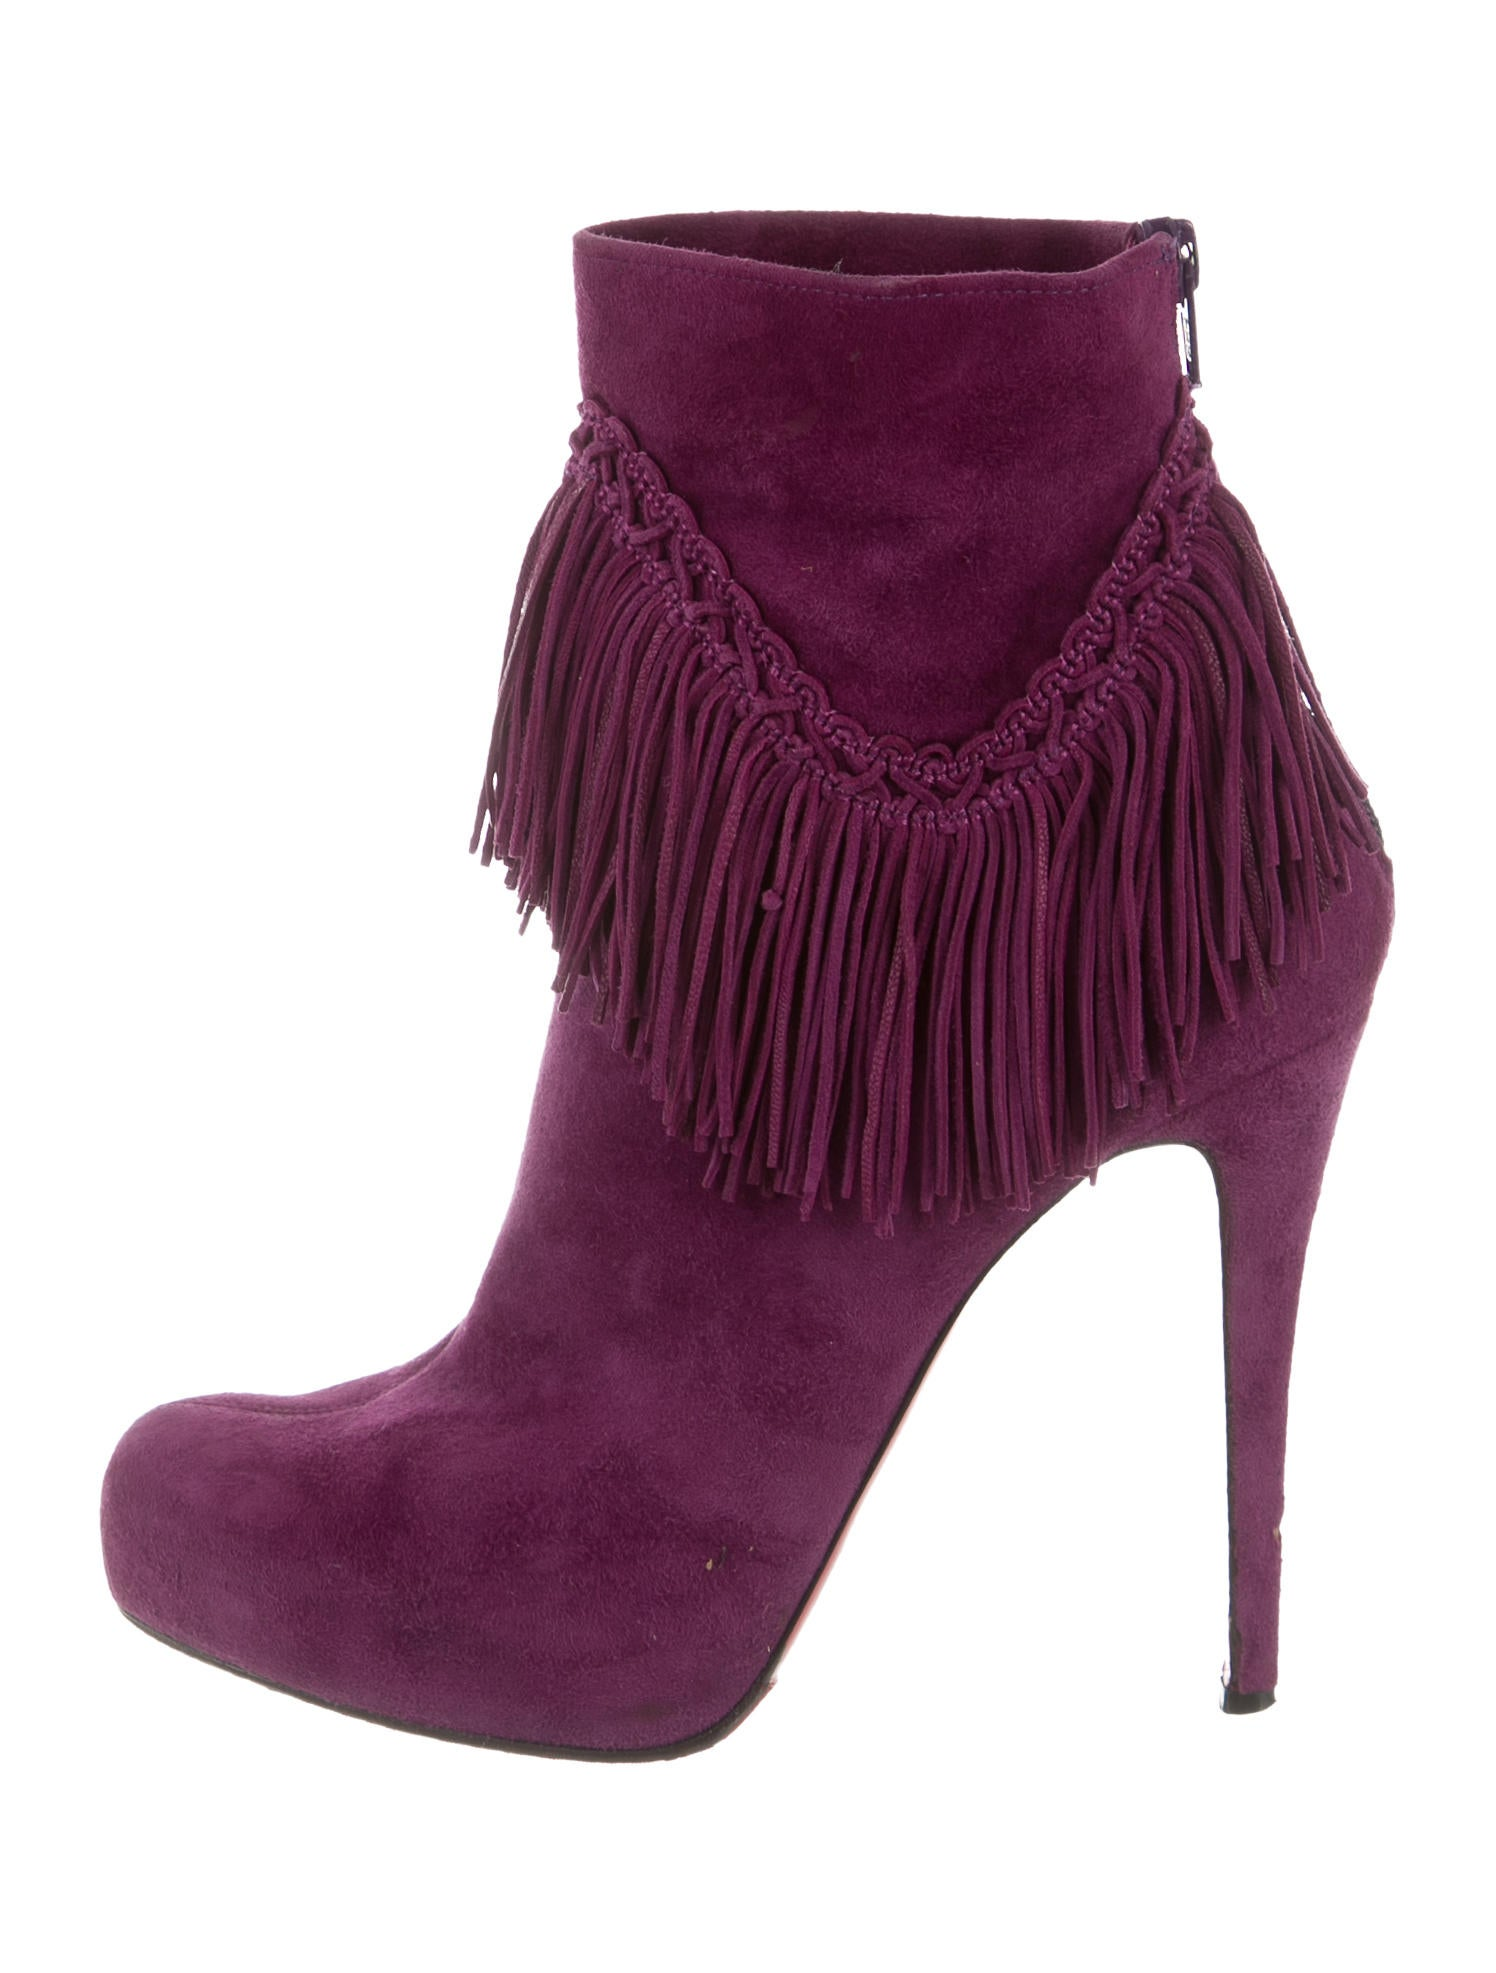 Page 3, Shop Women's Minnetonka Moccasin Fringe Boots for Women online or in store. Find top brands and the latest styles of fringe boots at MoccasinsUSA. Shop our collection of women's highest quality and most comfortable fringe boots.